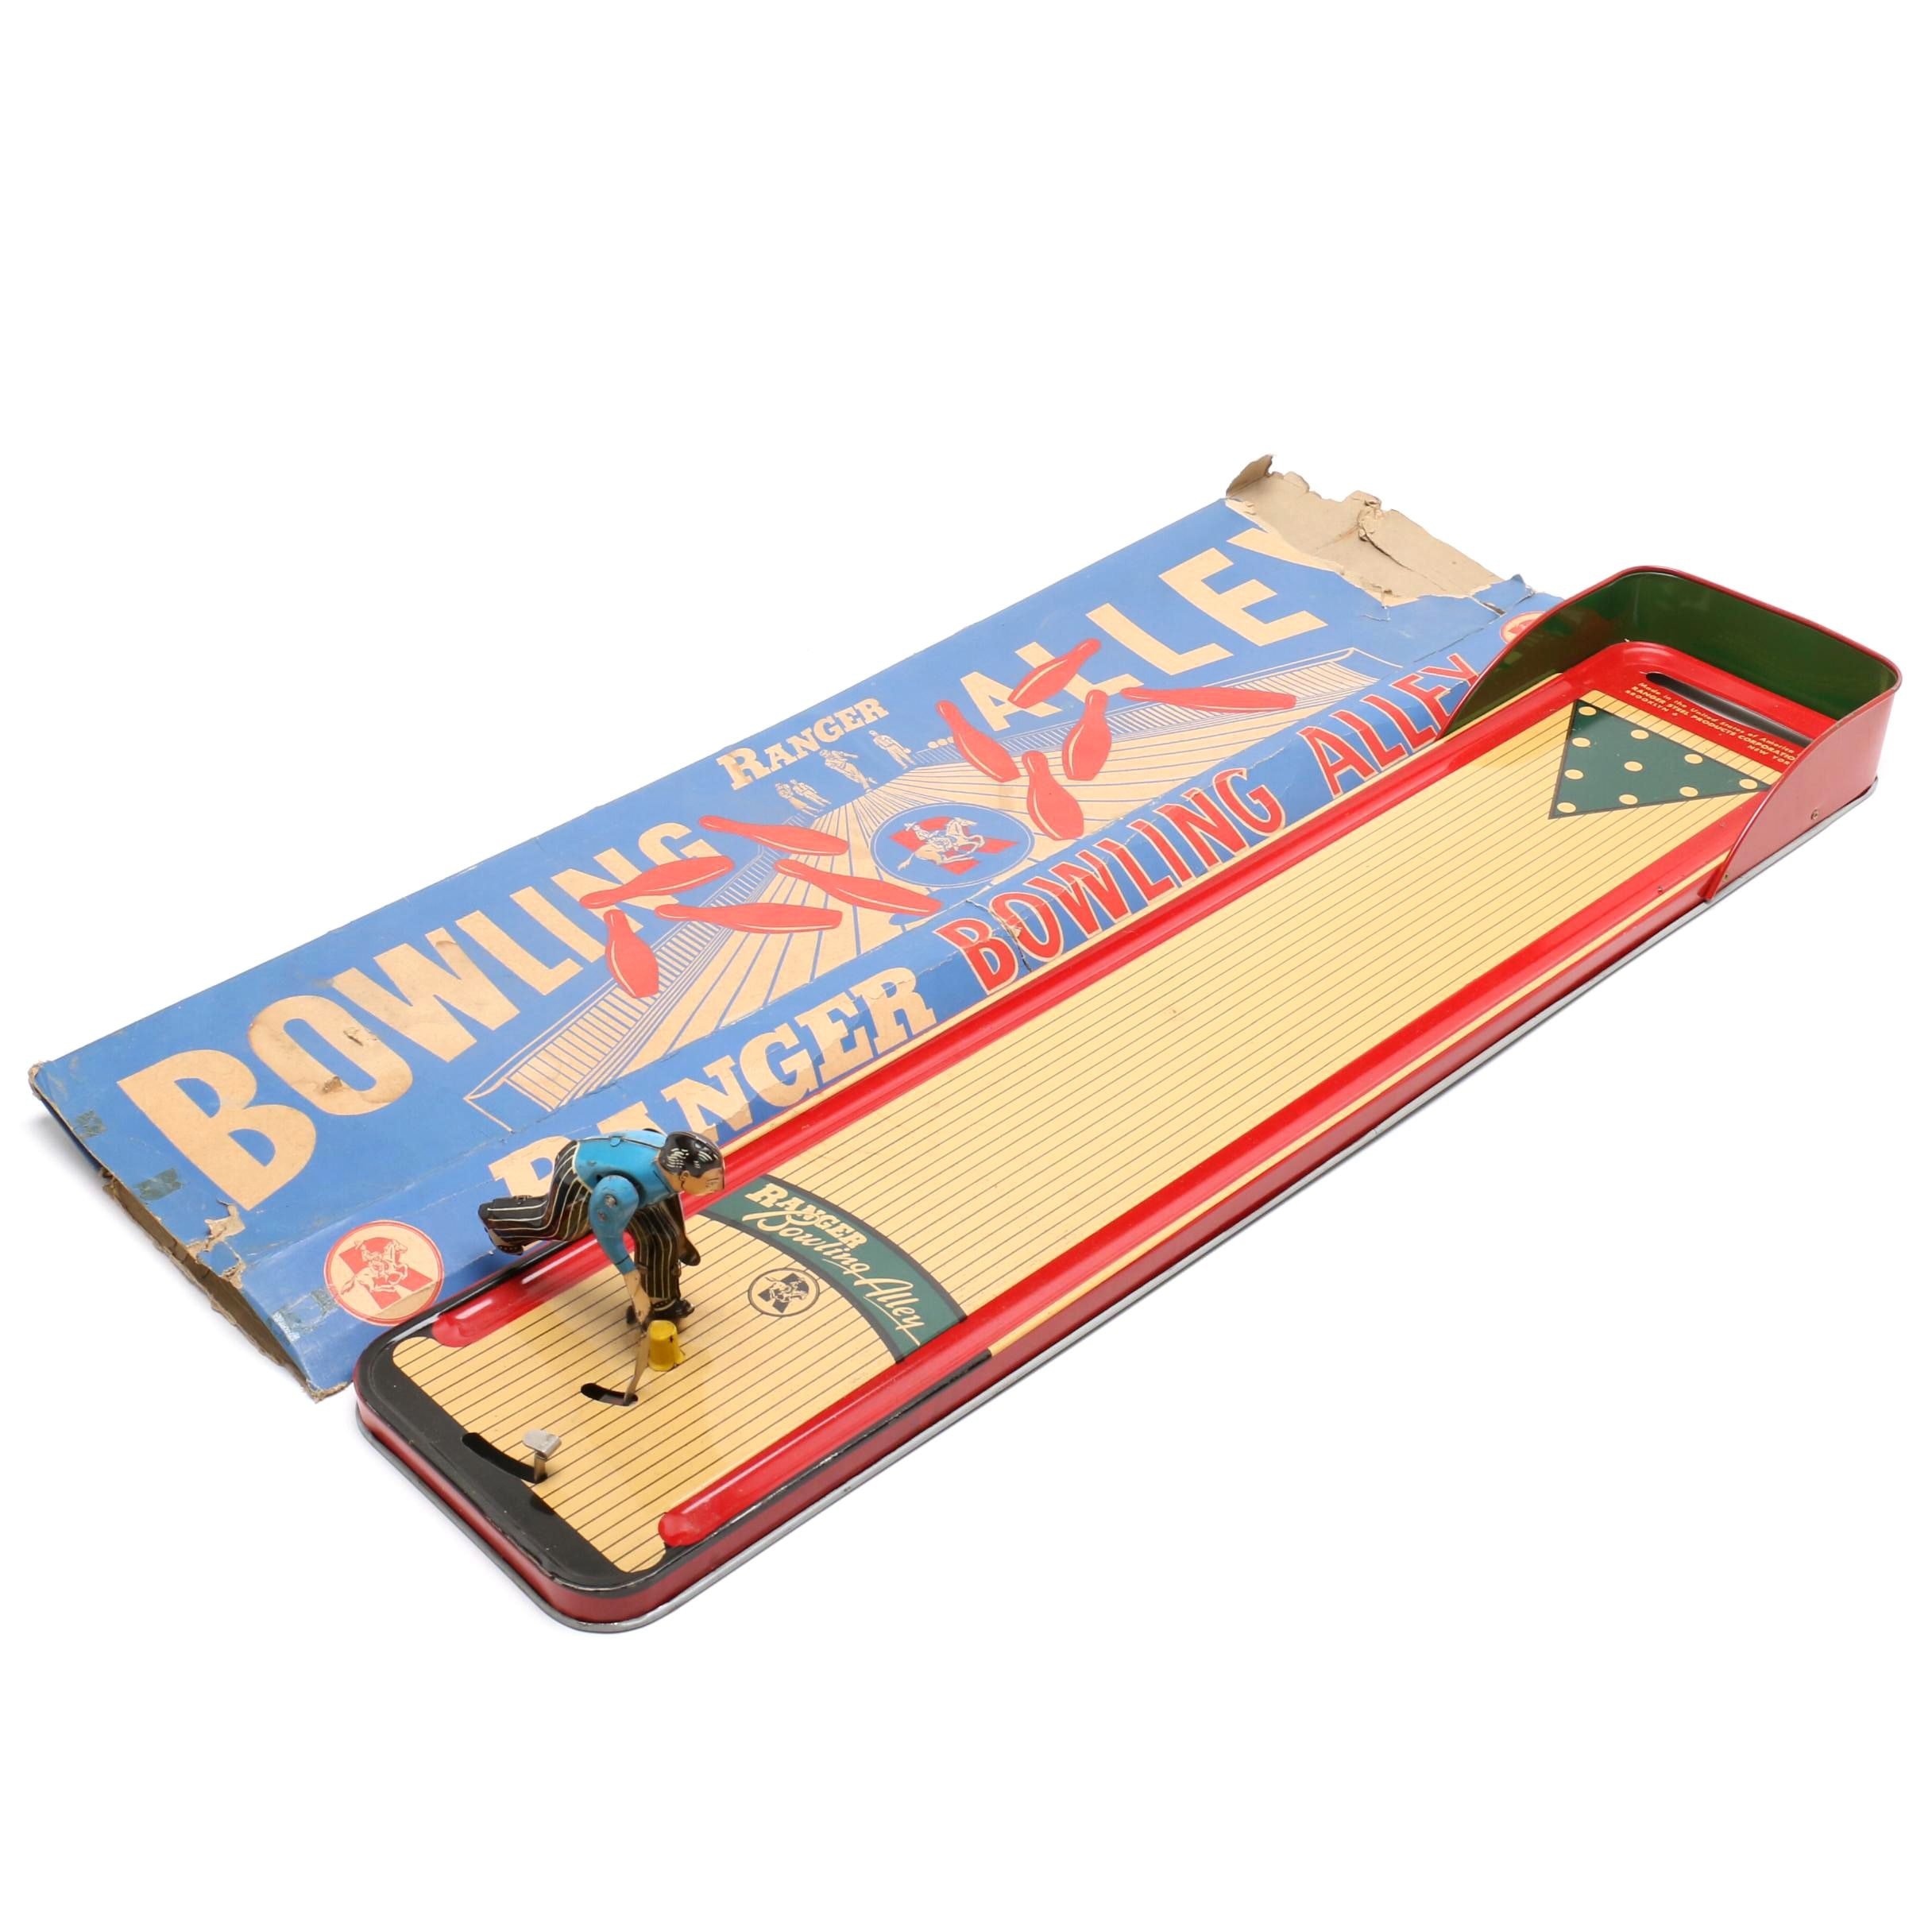 Vintage Ranger Tin Bowling Alley Table Top Game and Original Box